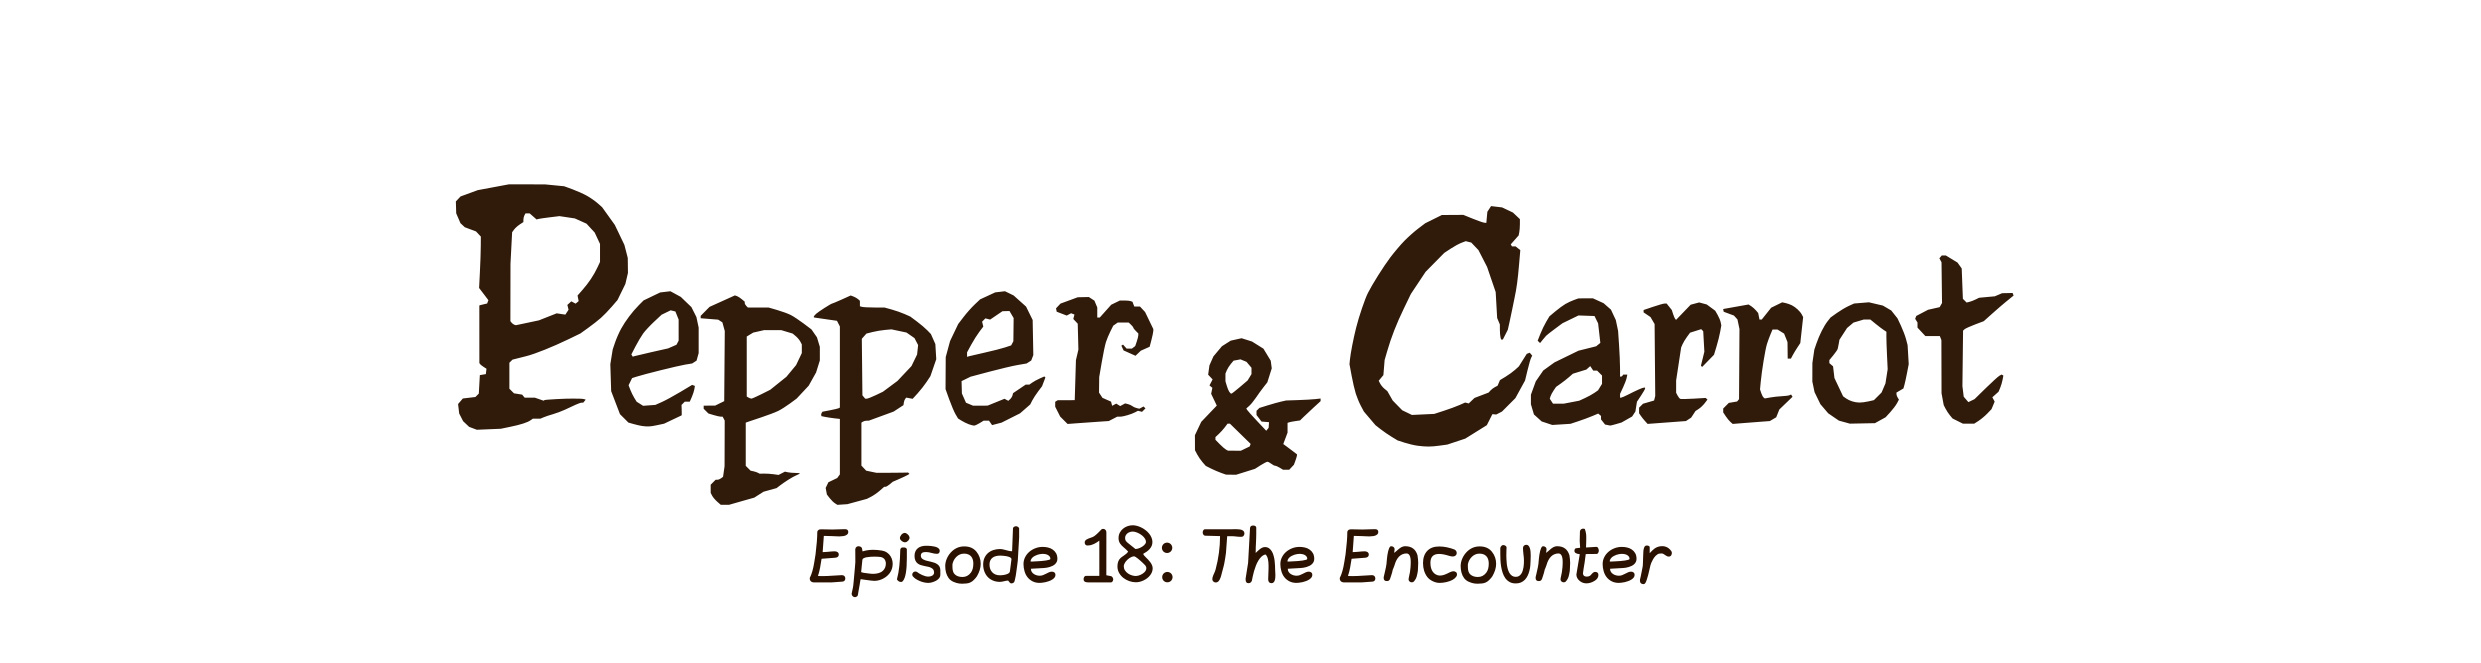 Episode 18: The Encounter